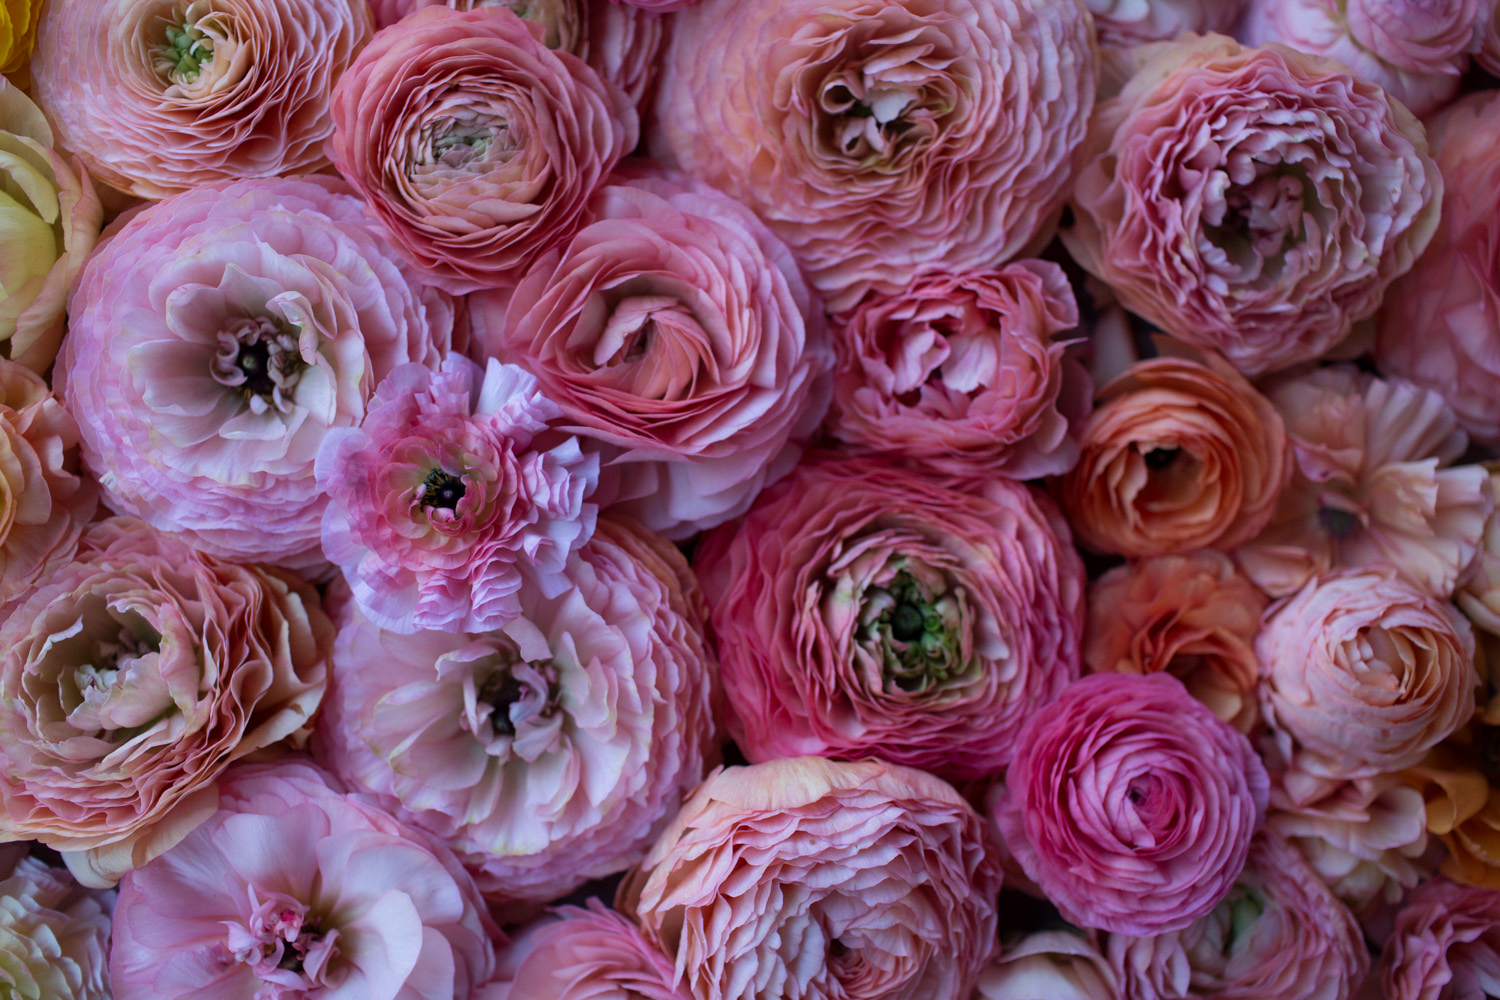 How To Grow Ranunculus Floret Flowers